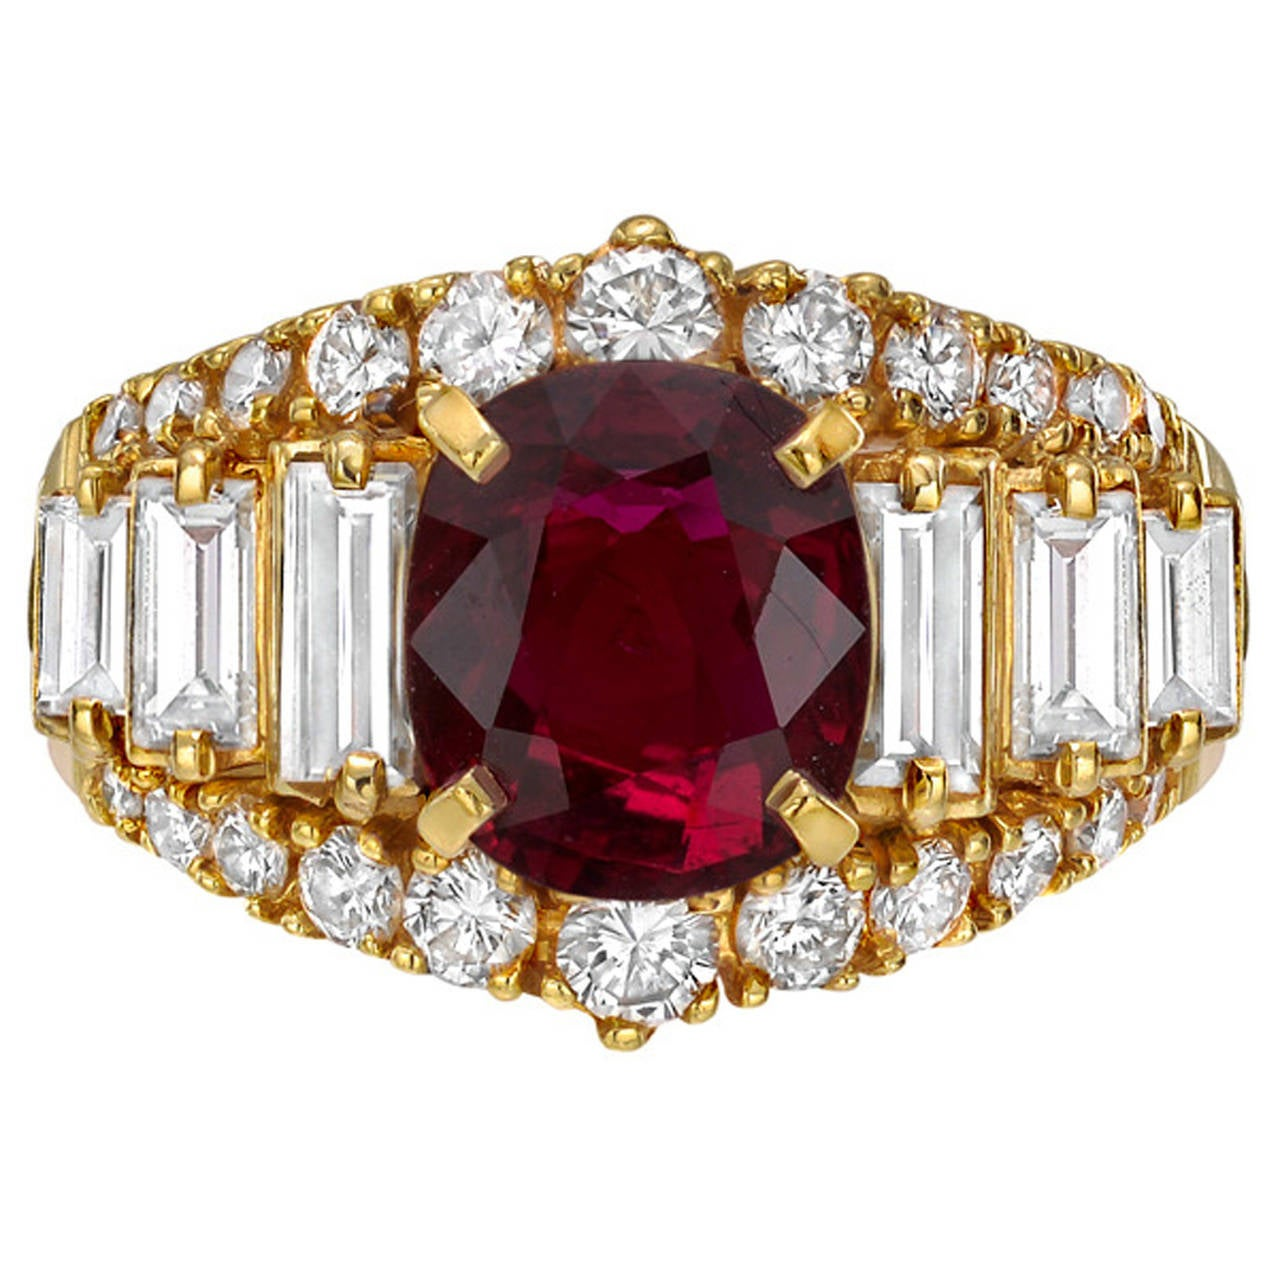 3.03 Carat Ruby and Diamond Dress Ring